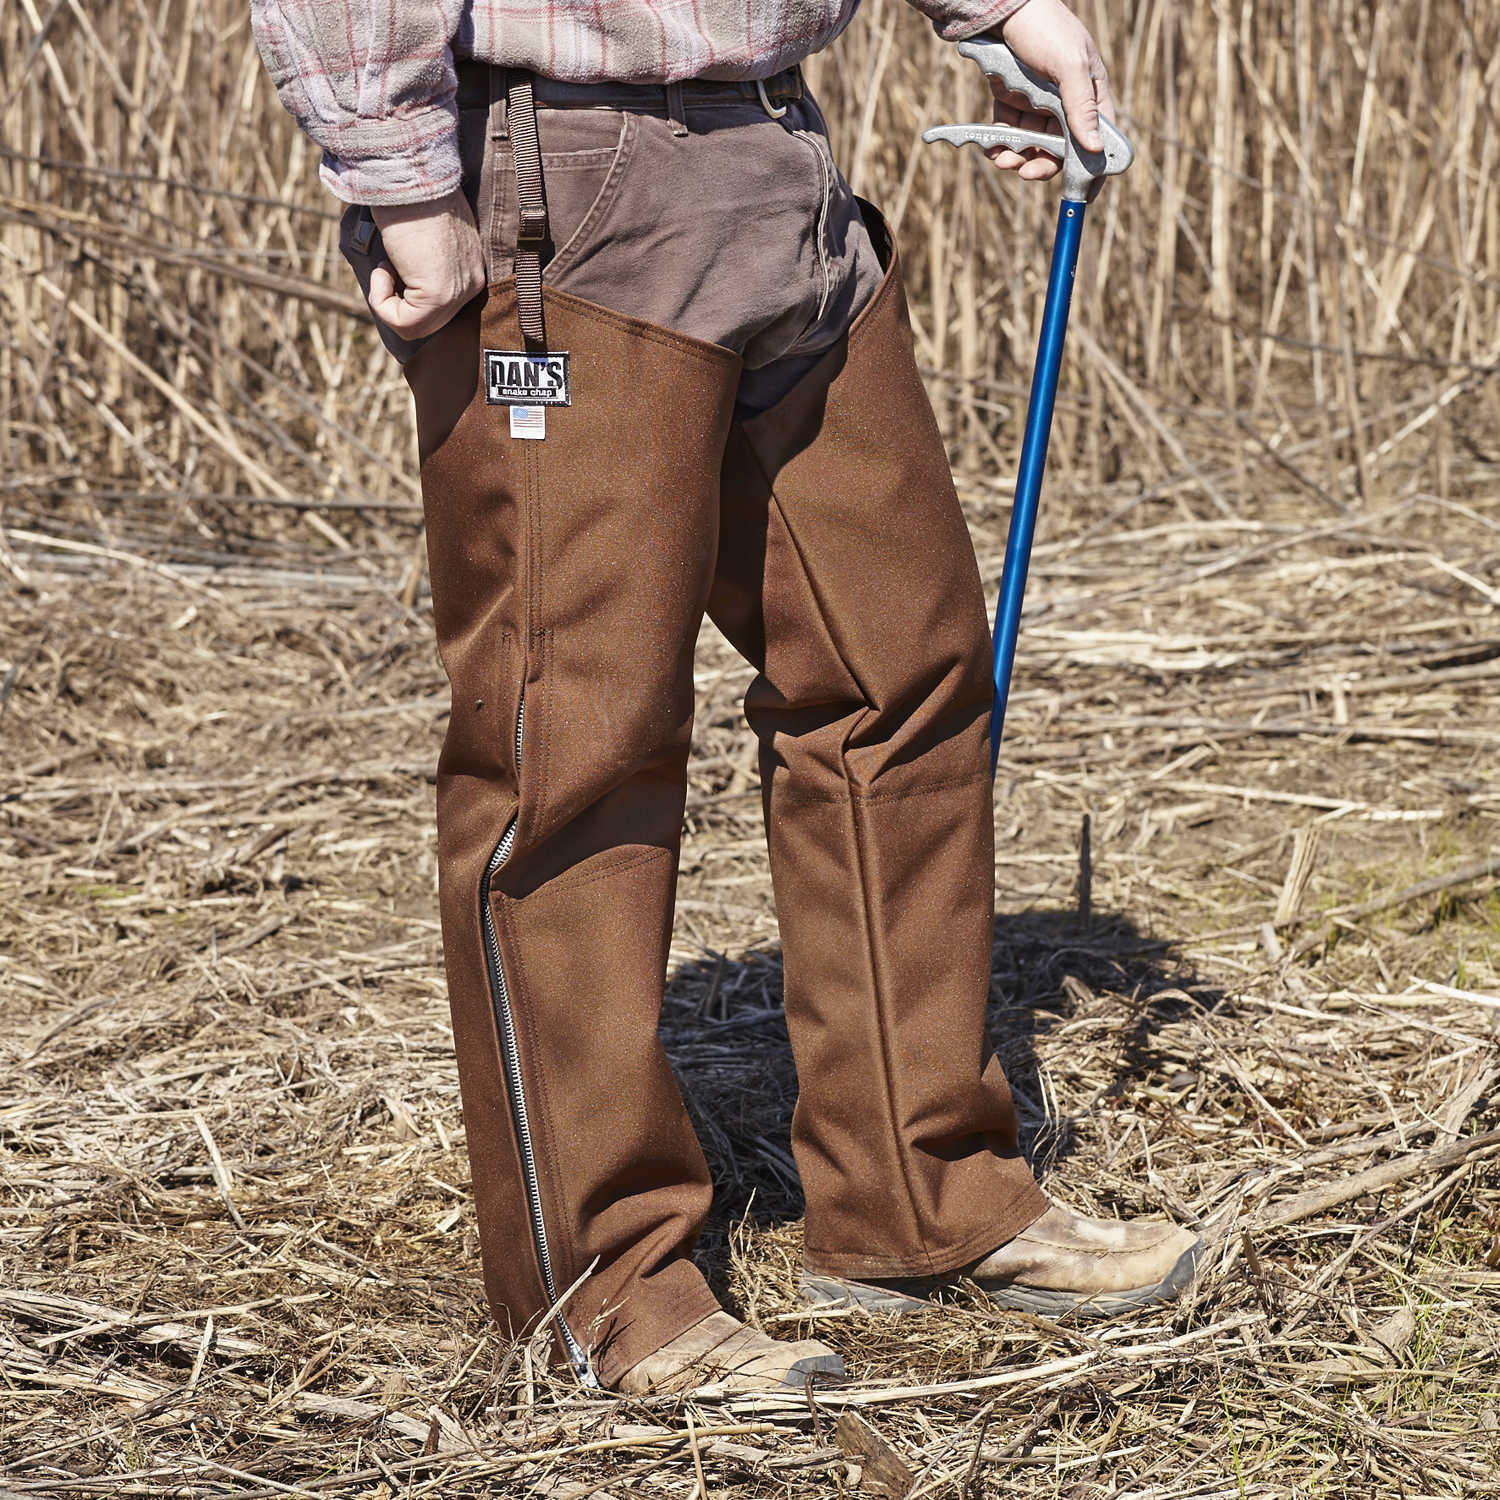 "Dan's Hunting Gear Snake Predector Chaps Large 30"" Inseam"